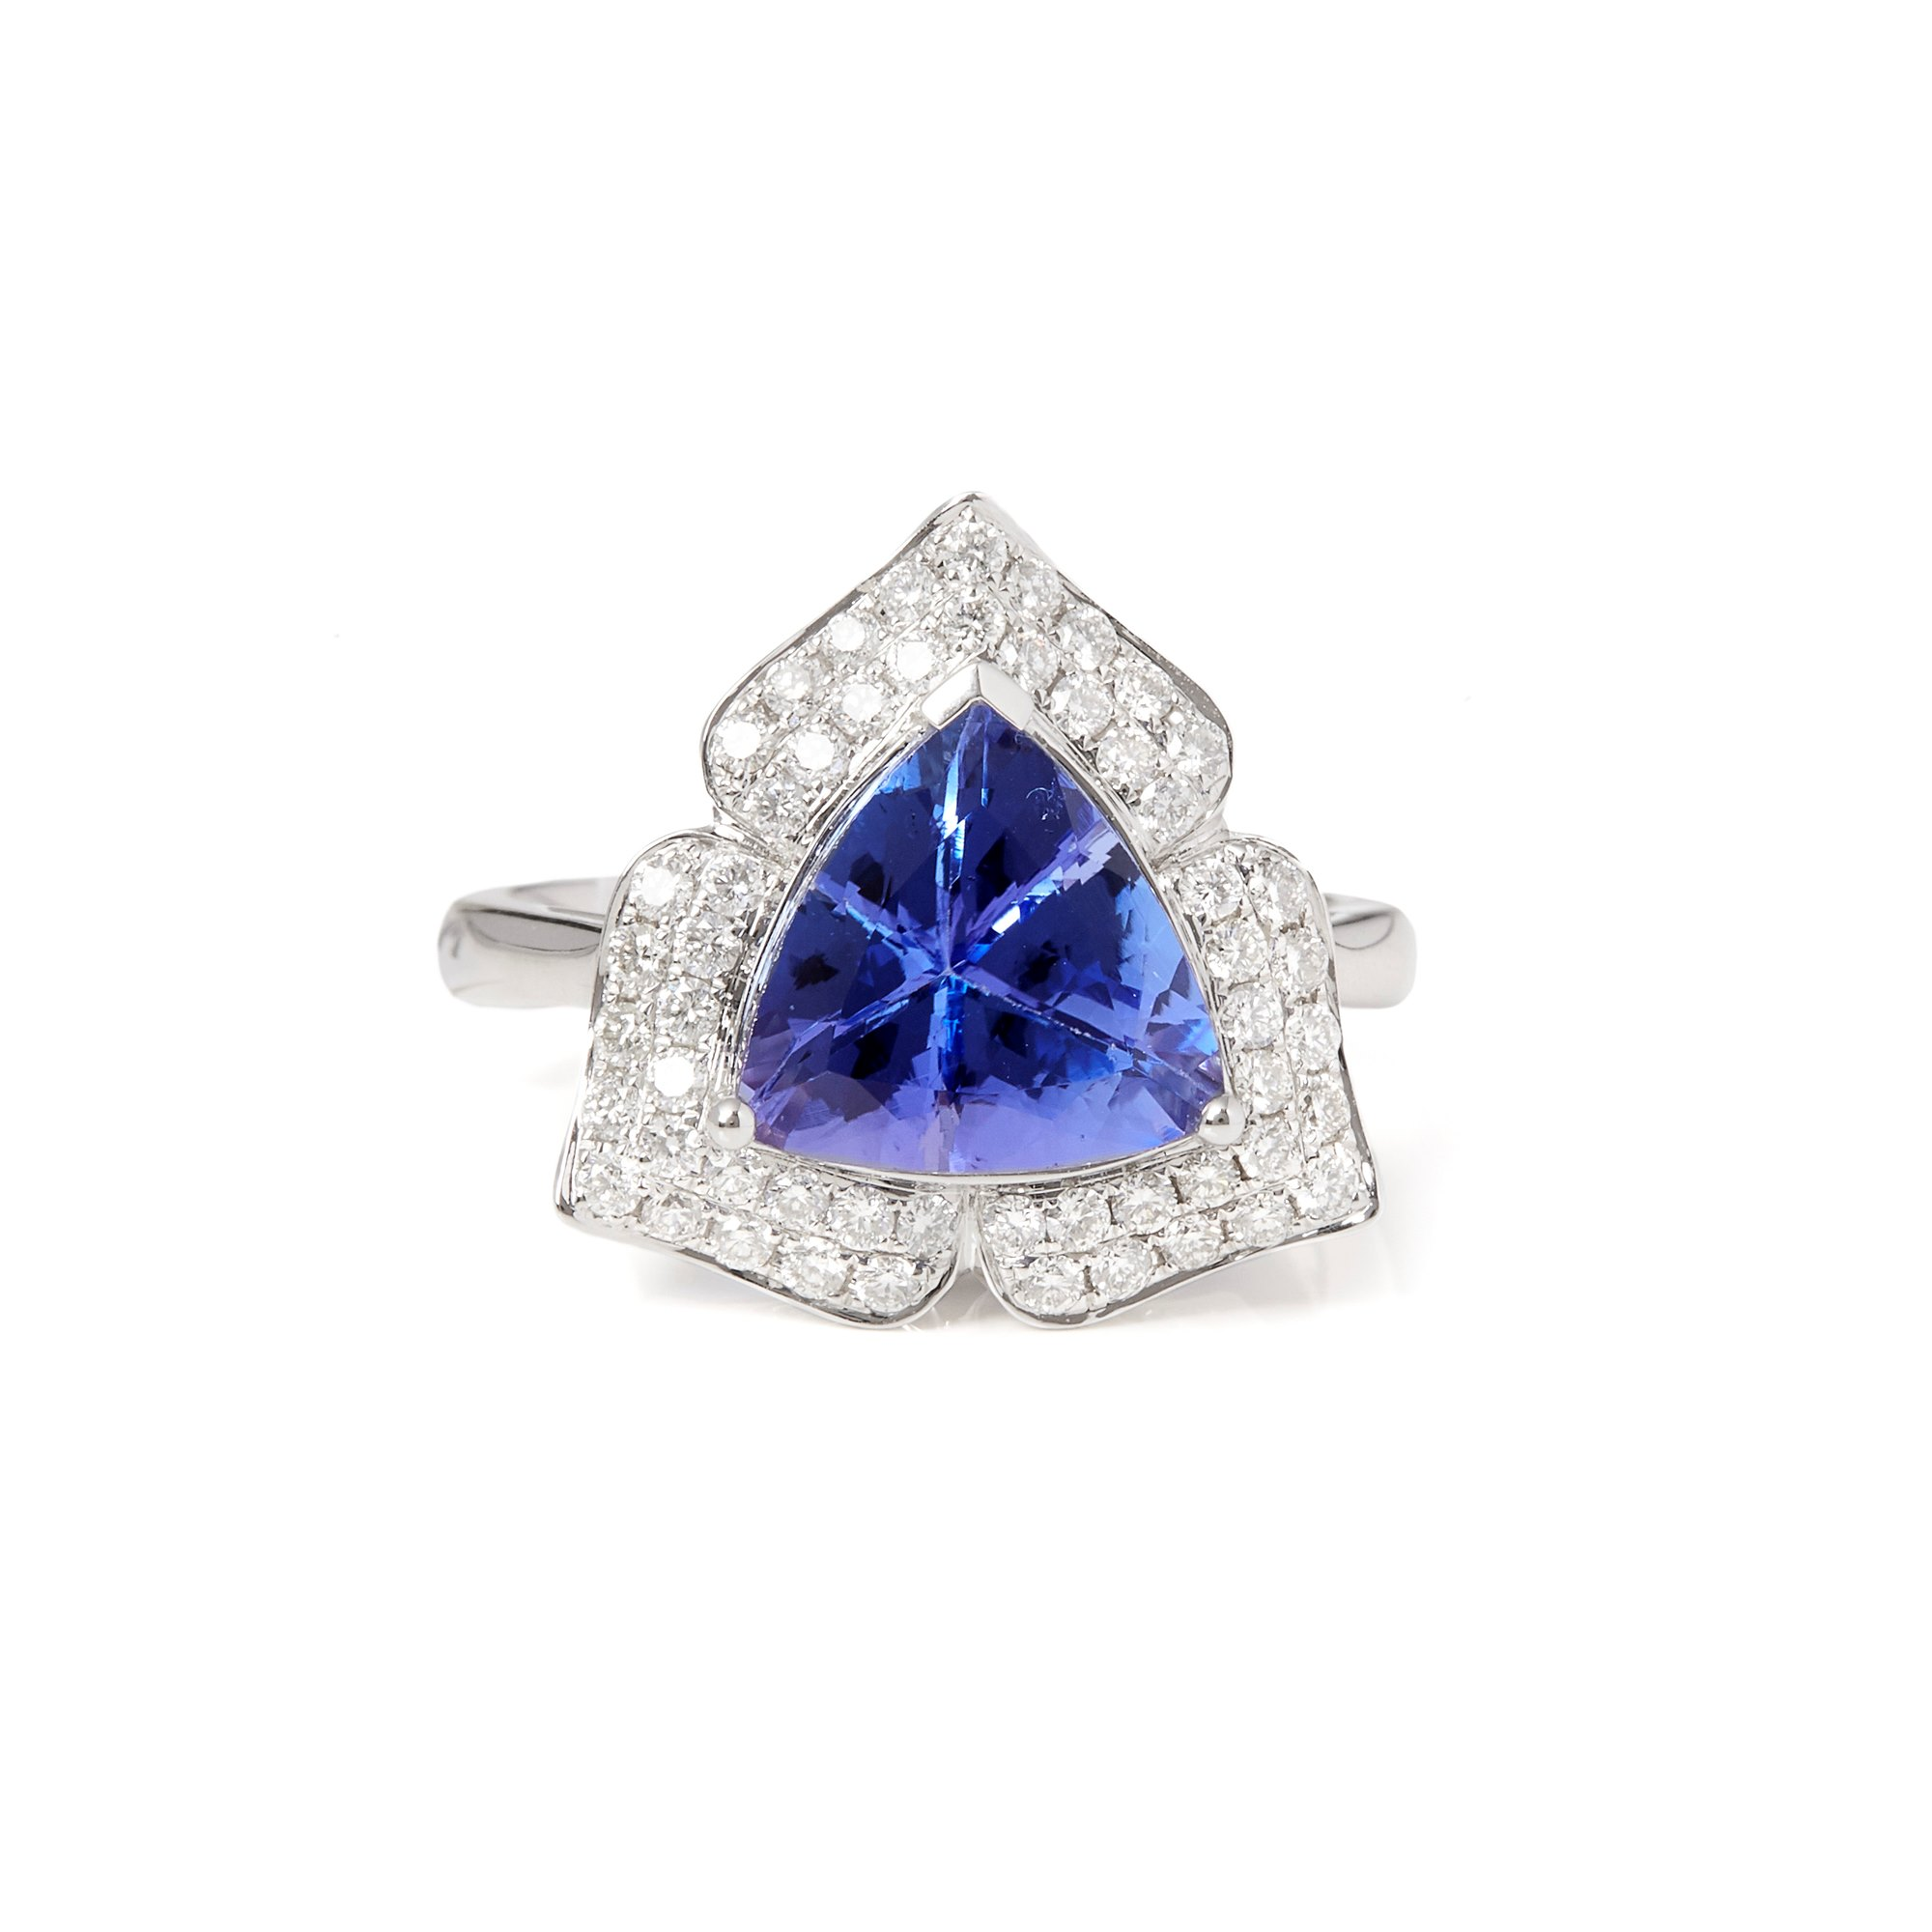 David Jerome Certified 3.31ct Trillion Cut Tanzanite and Diamond 18ct Gold Ring